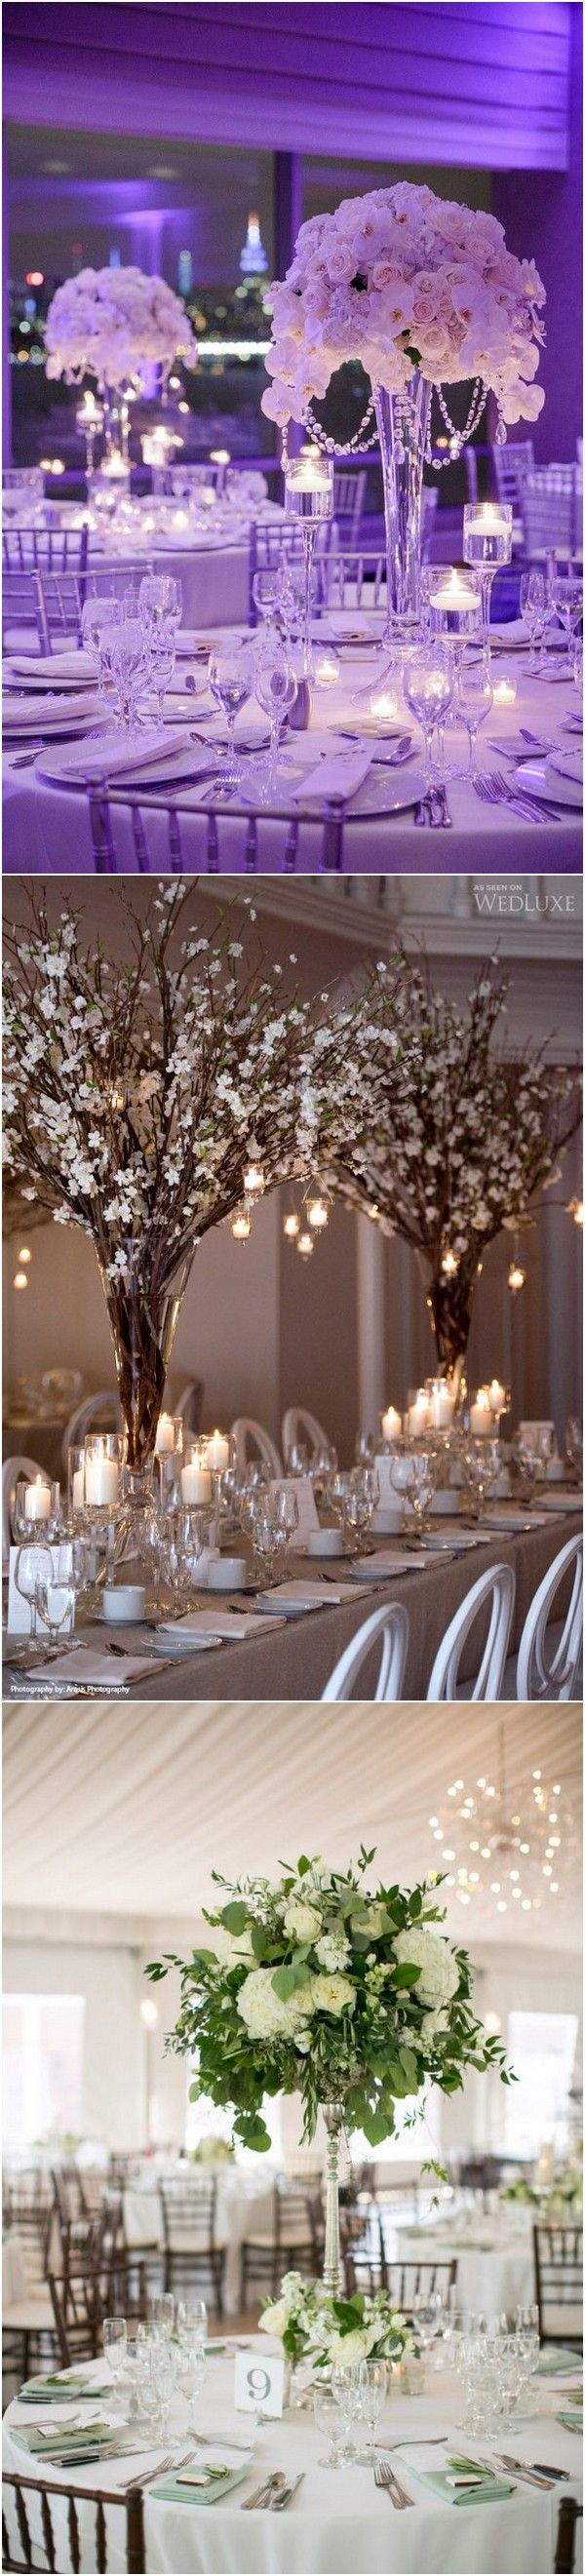 Tall wedding centerpiece ideas